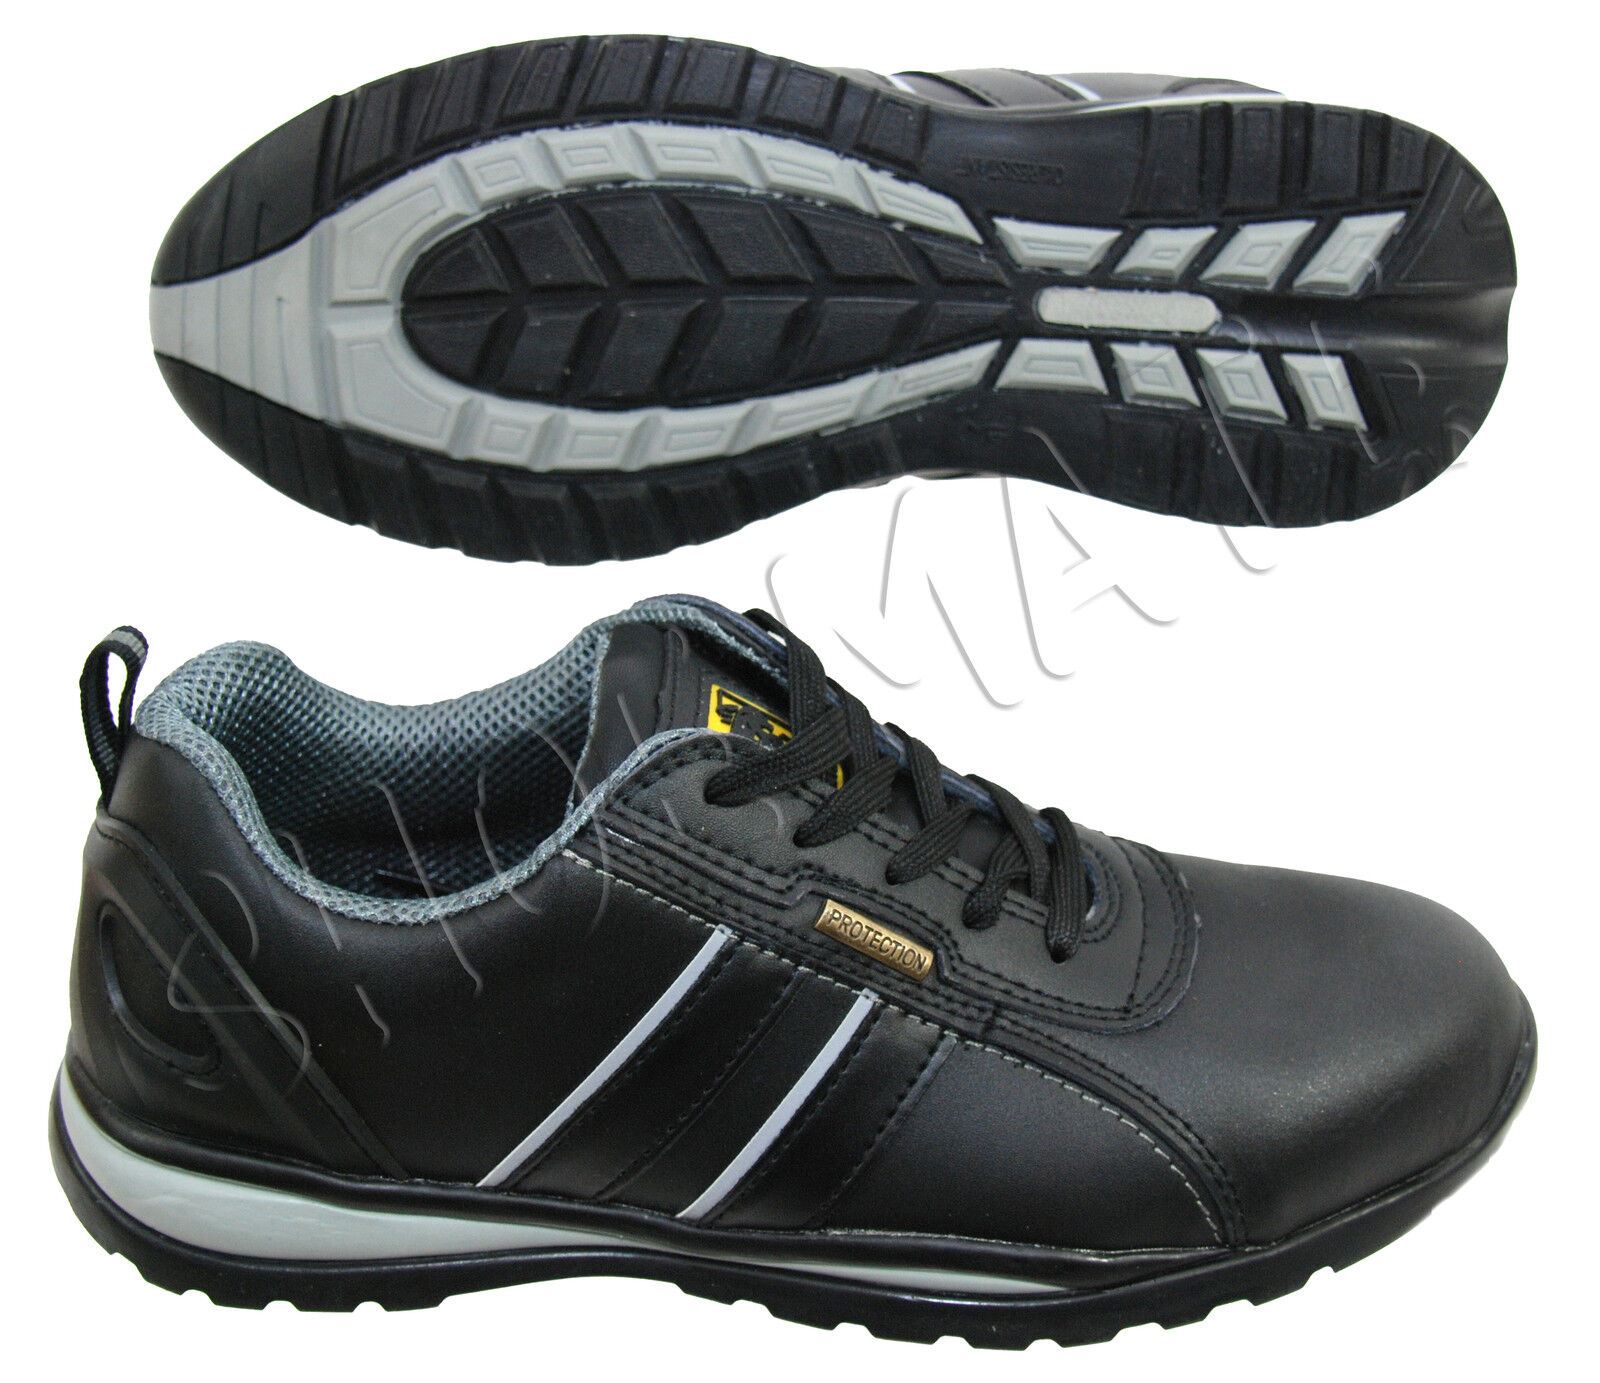 e6e21dce14946 Mens Lightweight Non Metal Plastic Composite Toe Cap Safety Work shoes Boots  UK